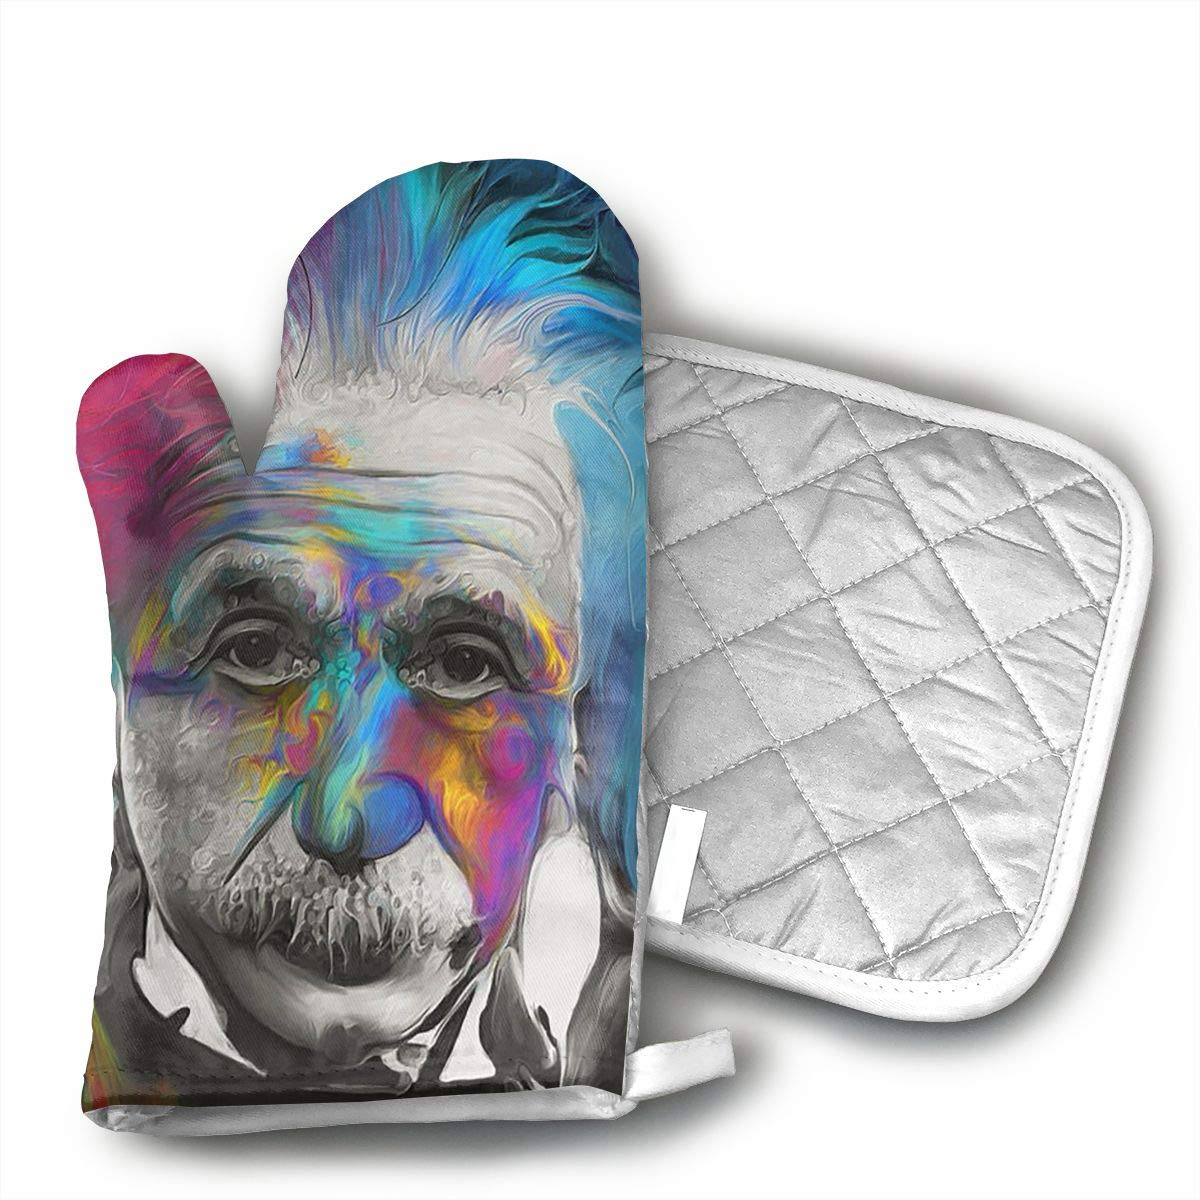 KEIOO Albert Einstein Art Oven Mitts and Potholders Heat Resistant Set of 2 Kitchen Set Non-Slip Grip Oven Gloves BBQ Cooking Baking Grilling